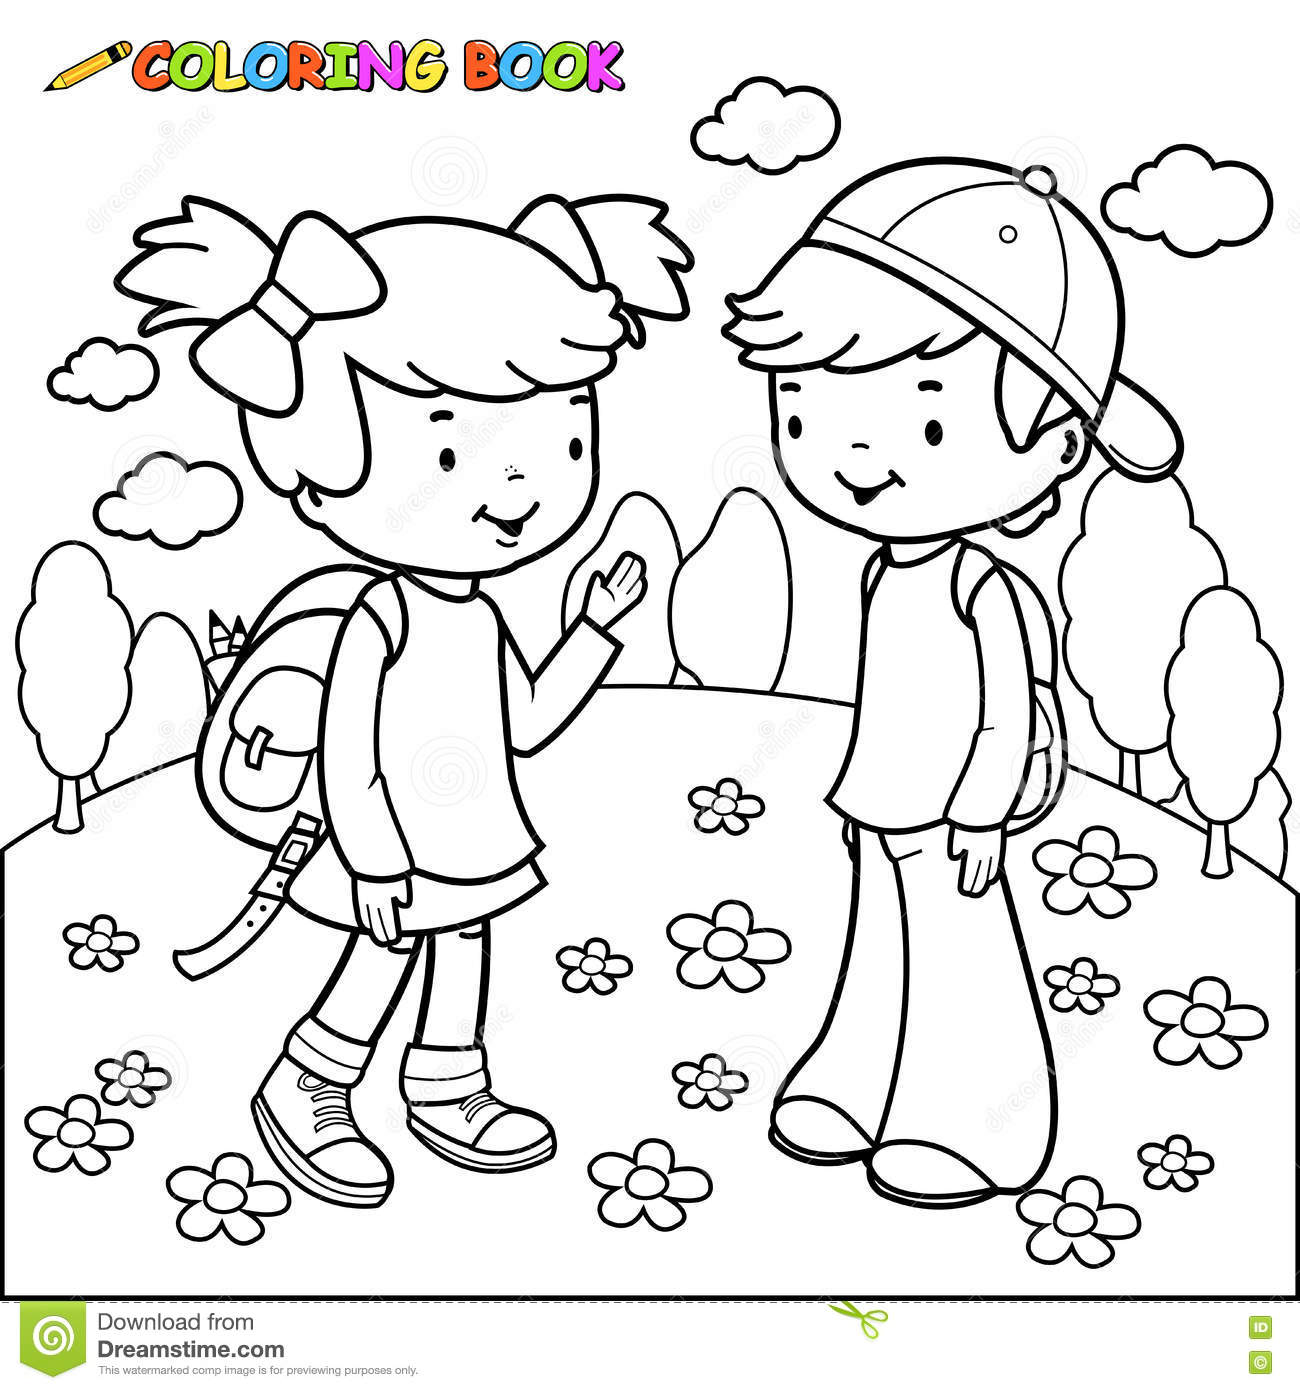 th?id=OIP.xhYN3WXvrQe BgT057XaBwEYEs&pid=15.1 in addition dora coloring pages 1 on dora coloring pages including dora coloring pages 2 on dora coloring pages also with dora the explorer boots coloring pages on dora coloring pages besides playmobil coloring pages super 4 on dora coloring pages